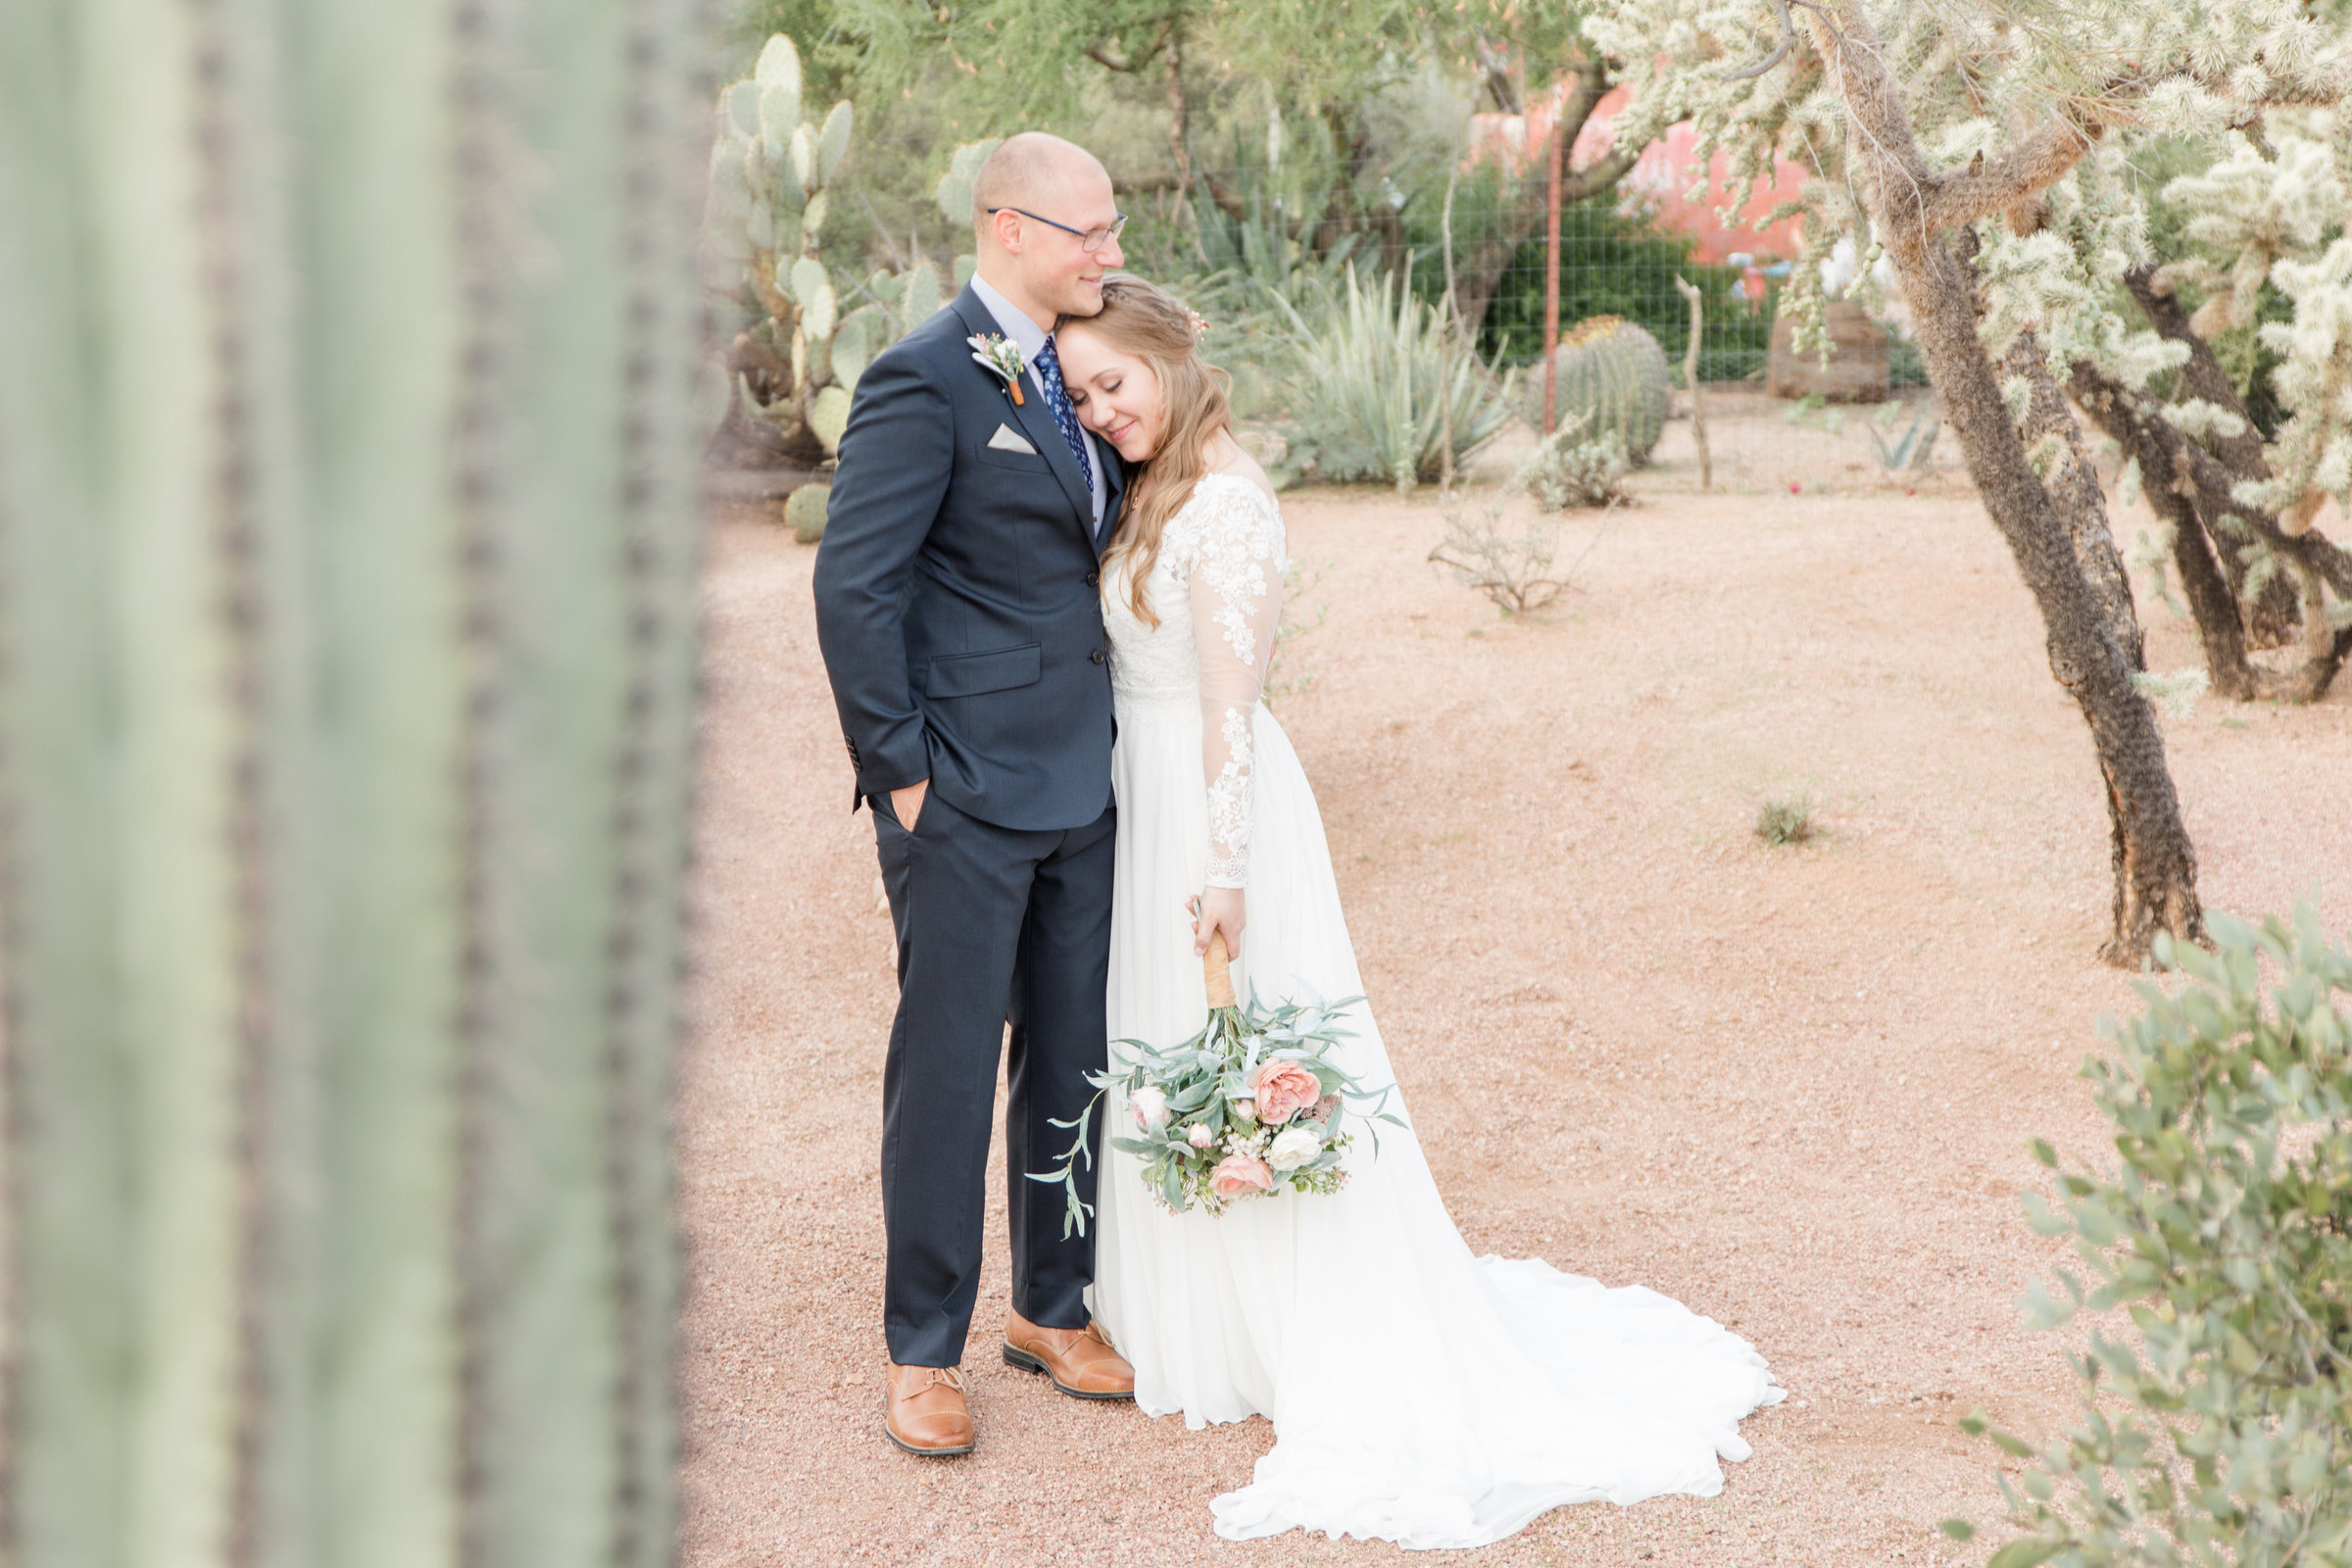 A cactus in the foreground and a bride and groom standing in the Arizona desert